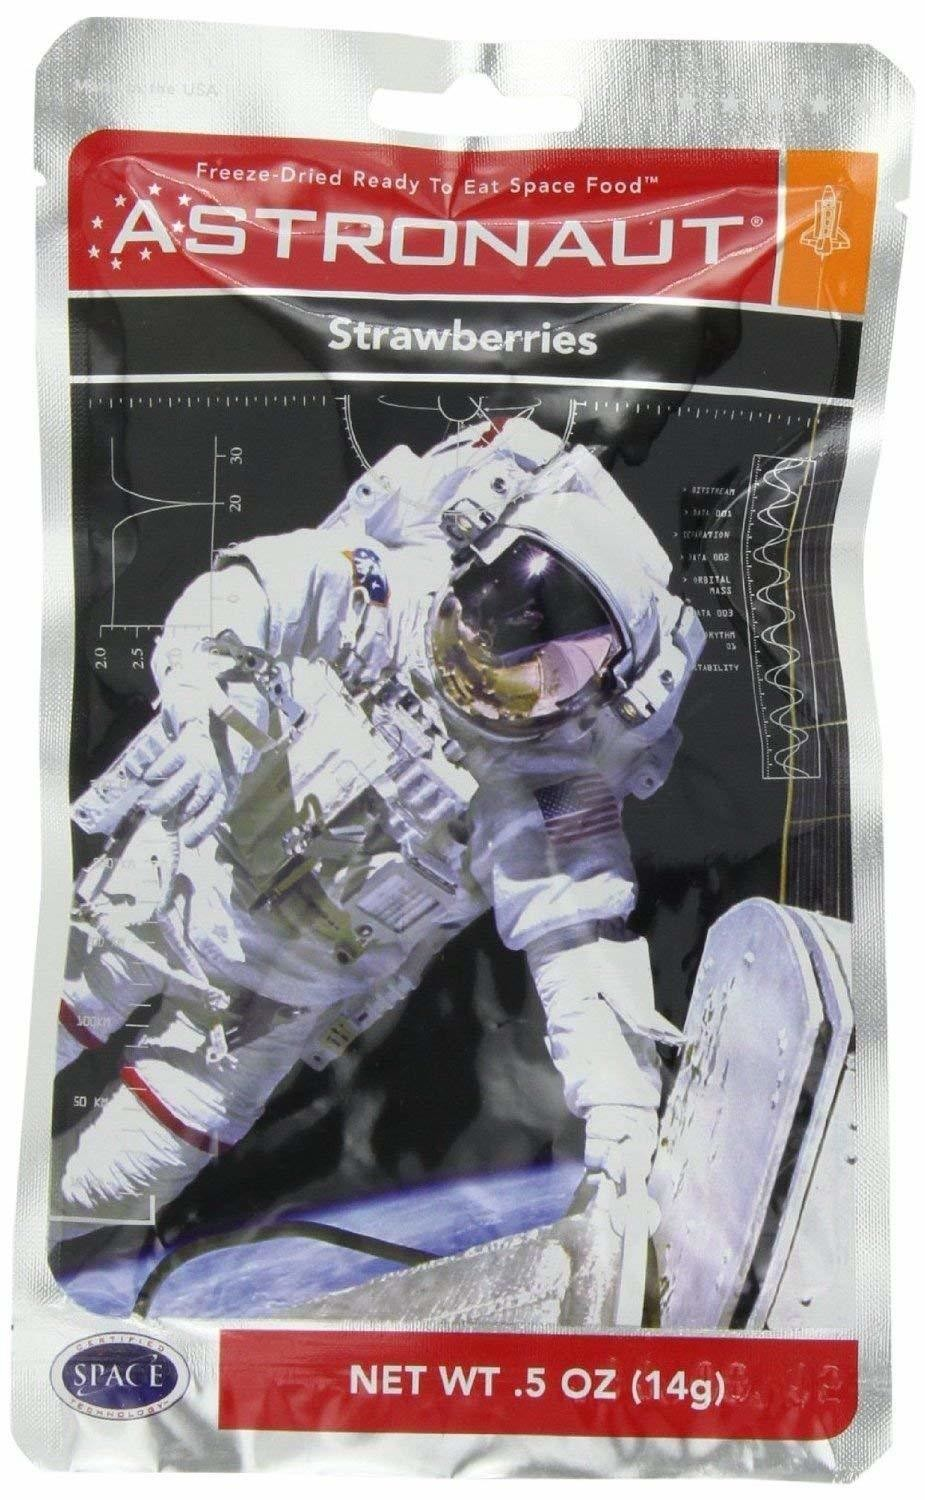 Space Food Freeze-Dried Ready To Eat Fruit